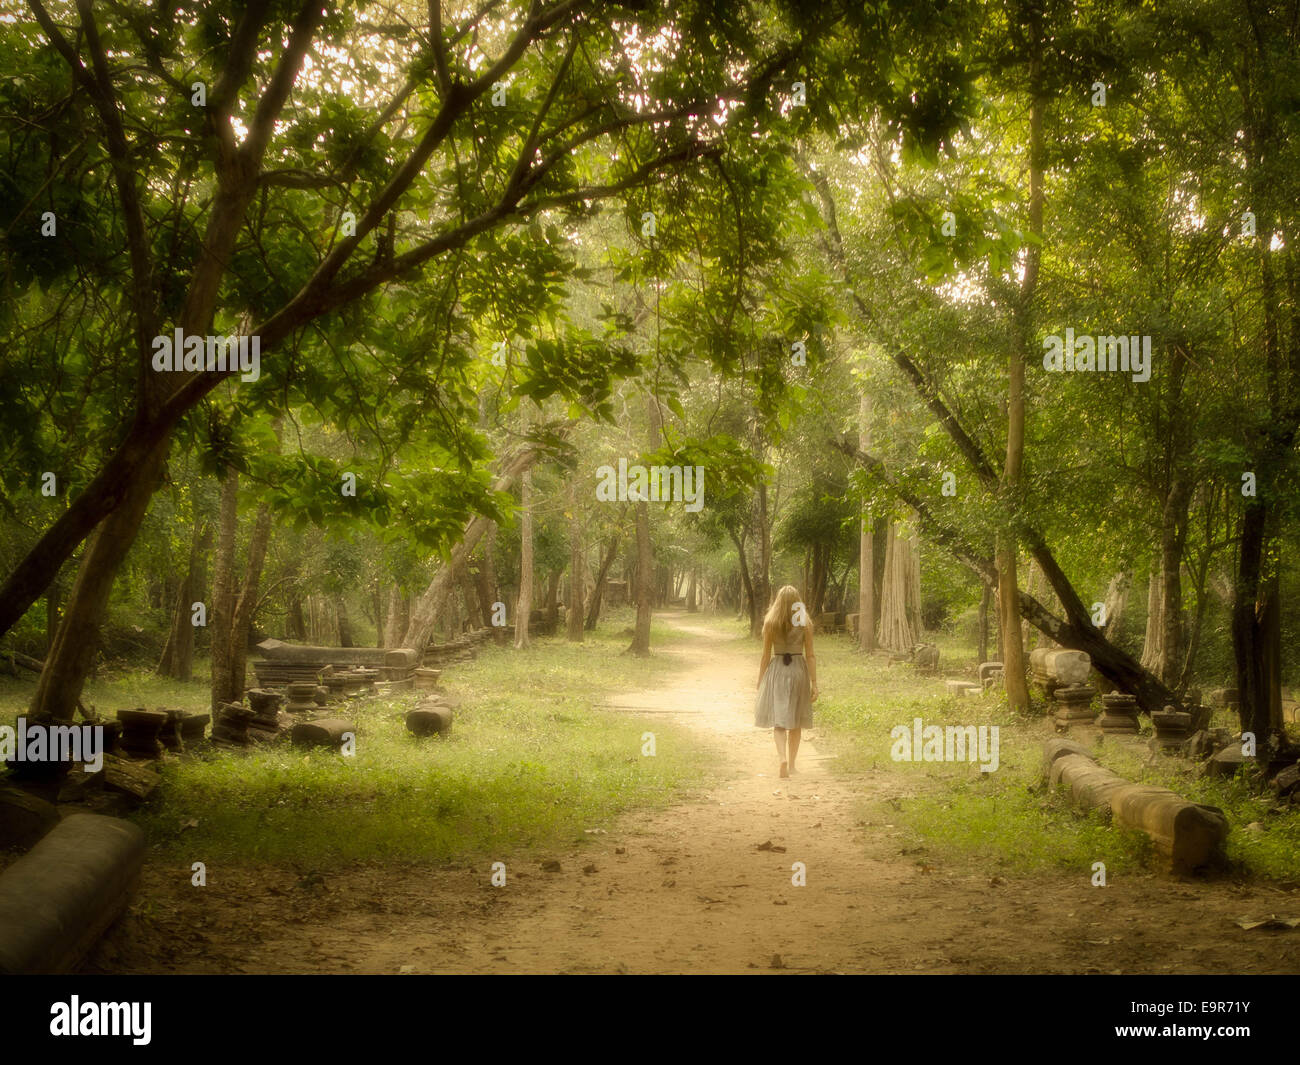 Young woman walking on a mysterious path into an enchanted forest. - Stock Image